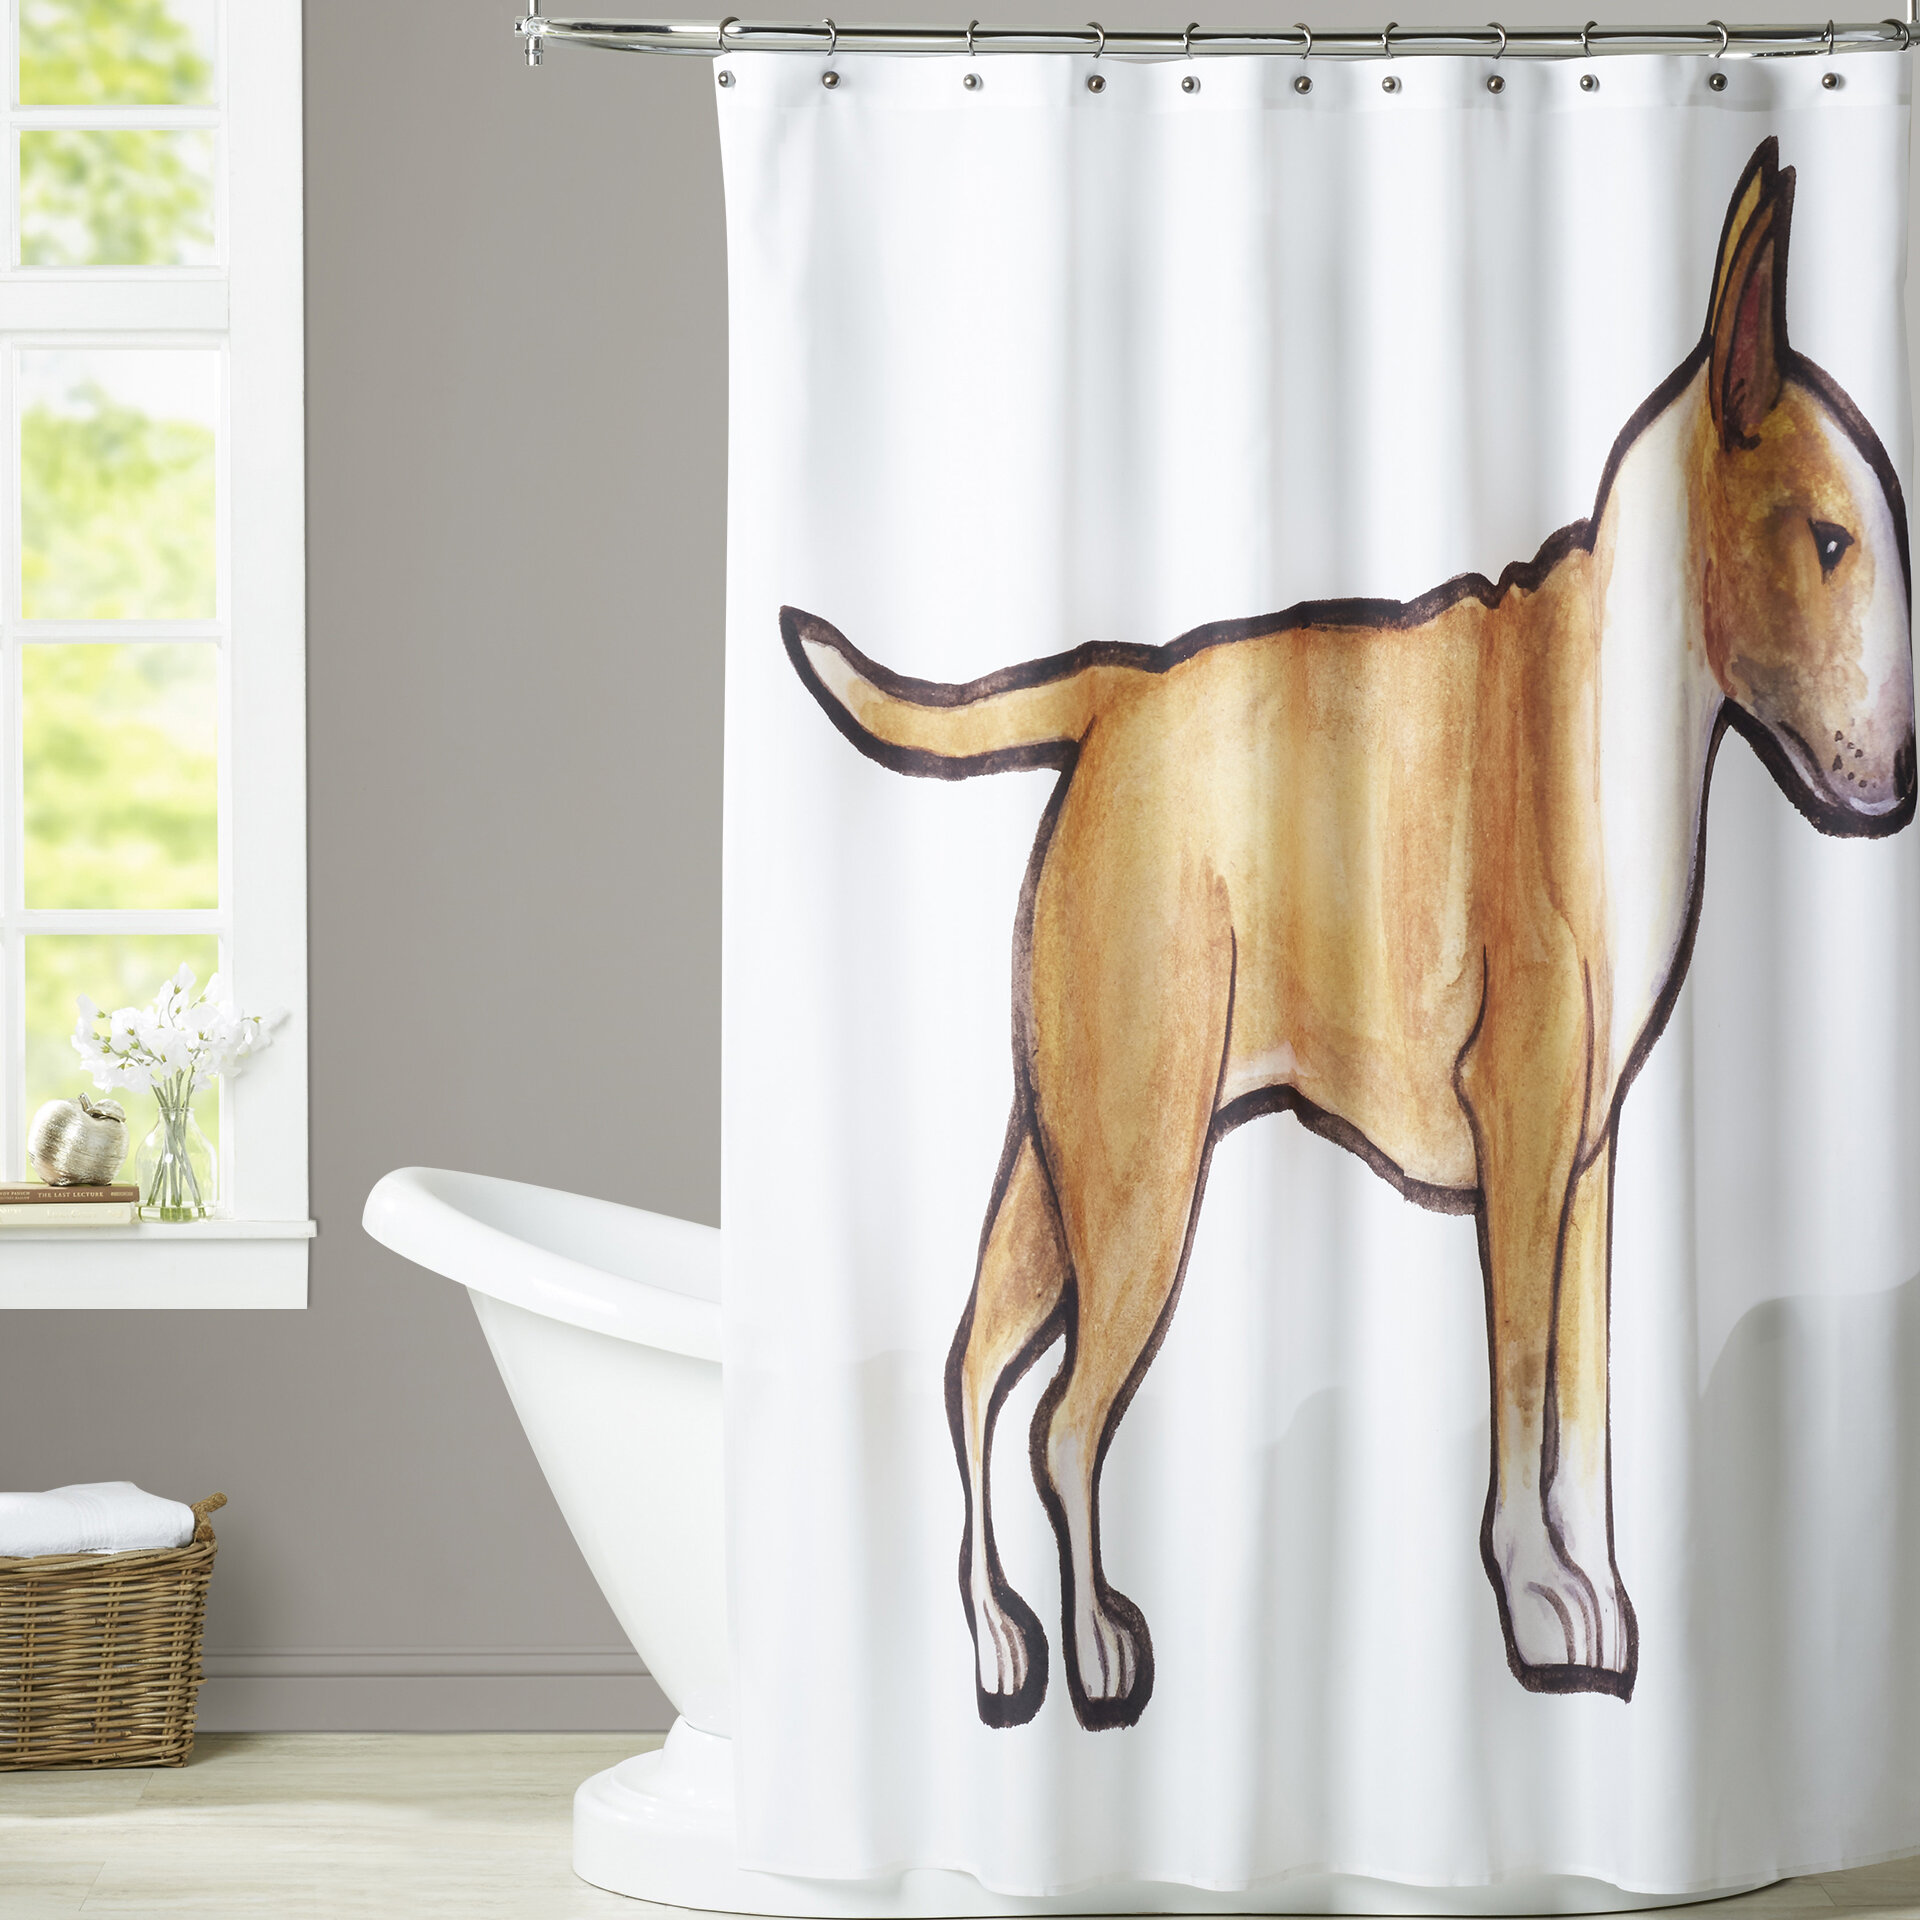 Brayden Studio Rosen English Bulldog 2 Shower Curtain